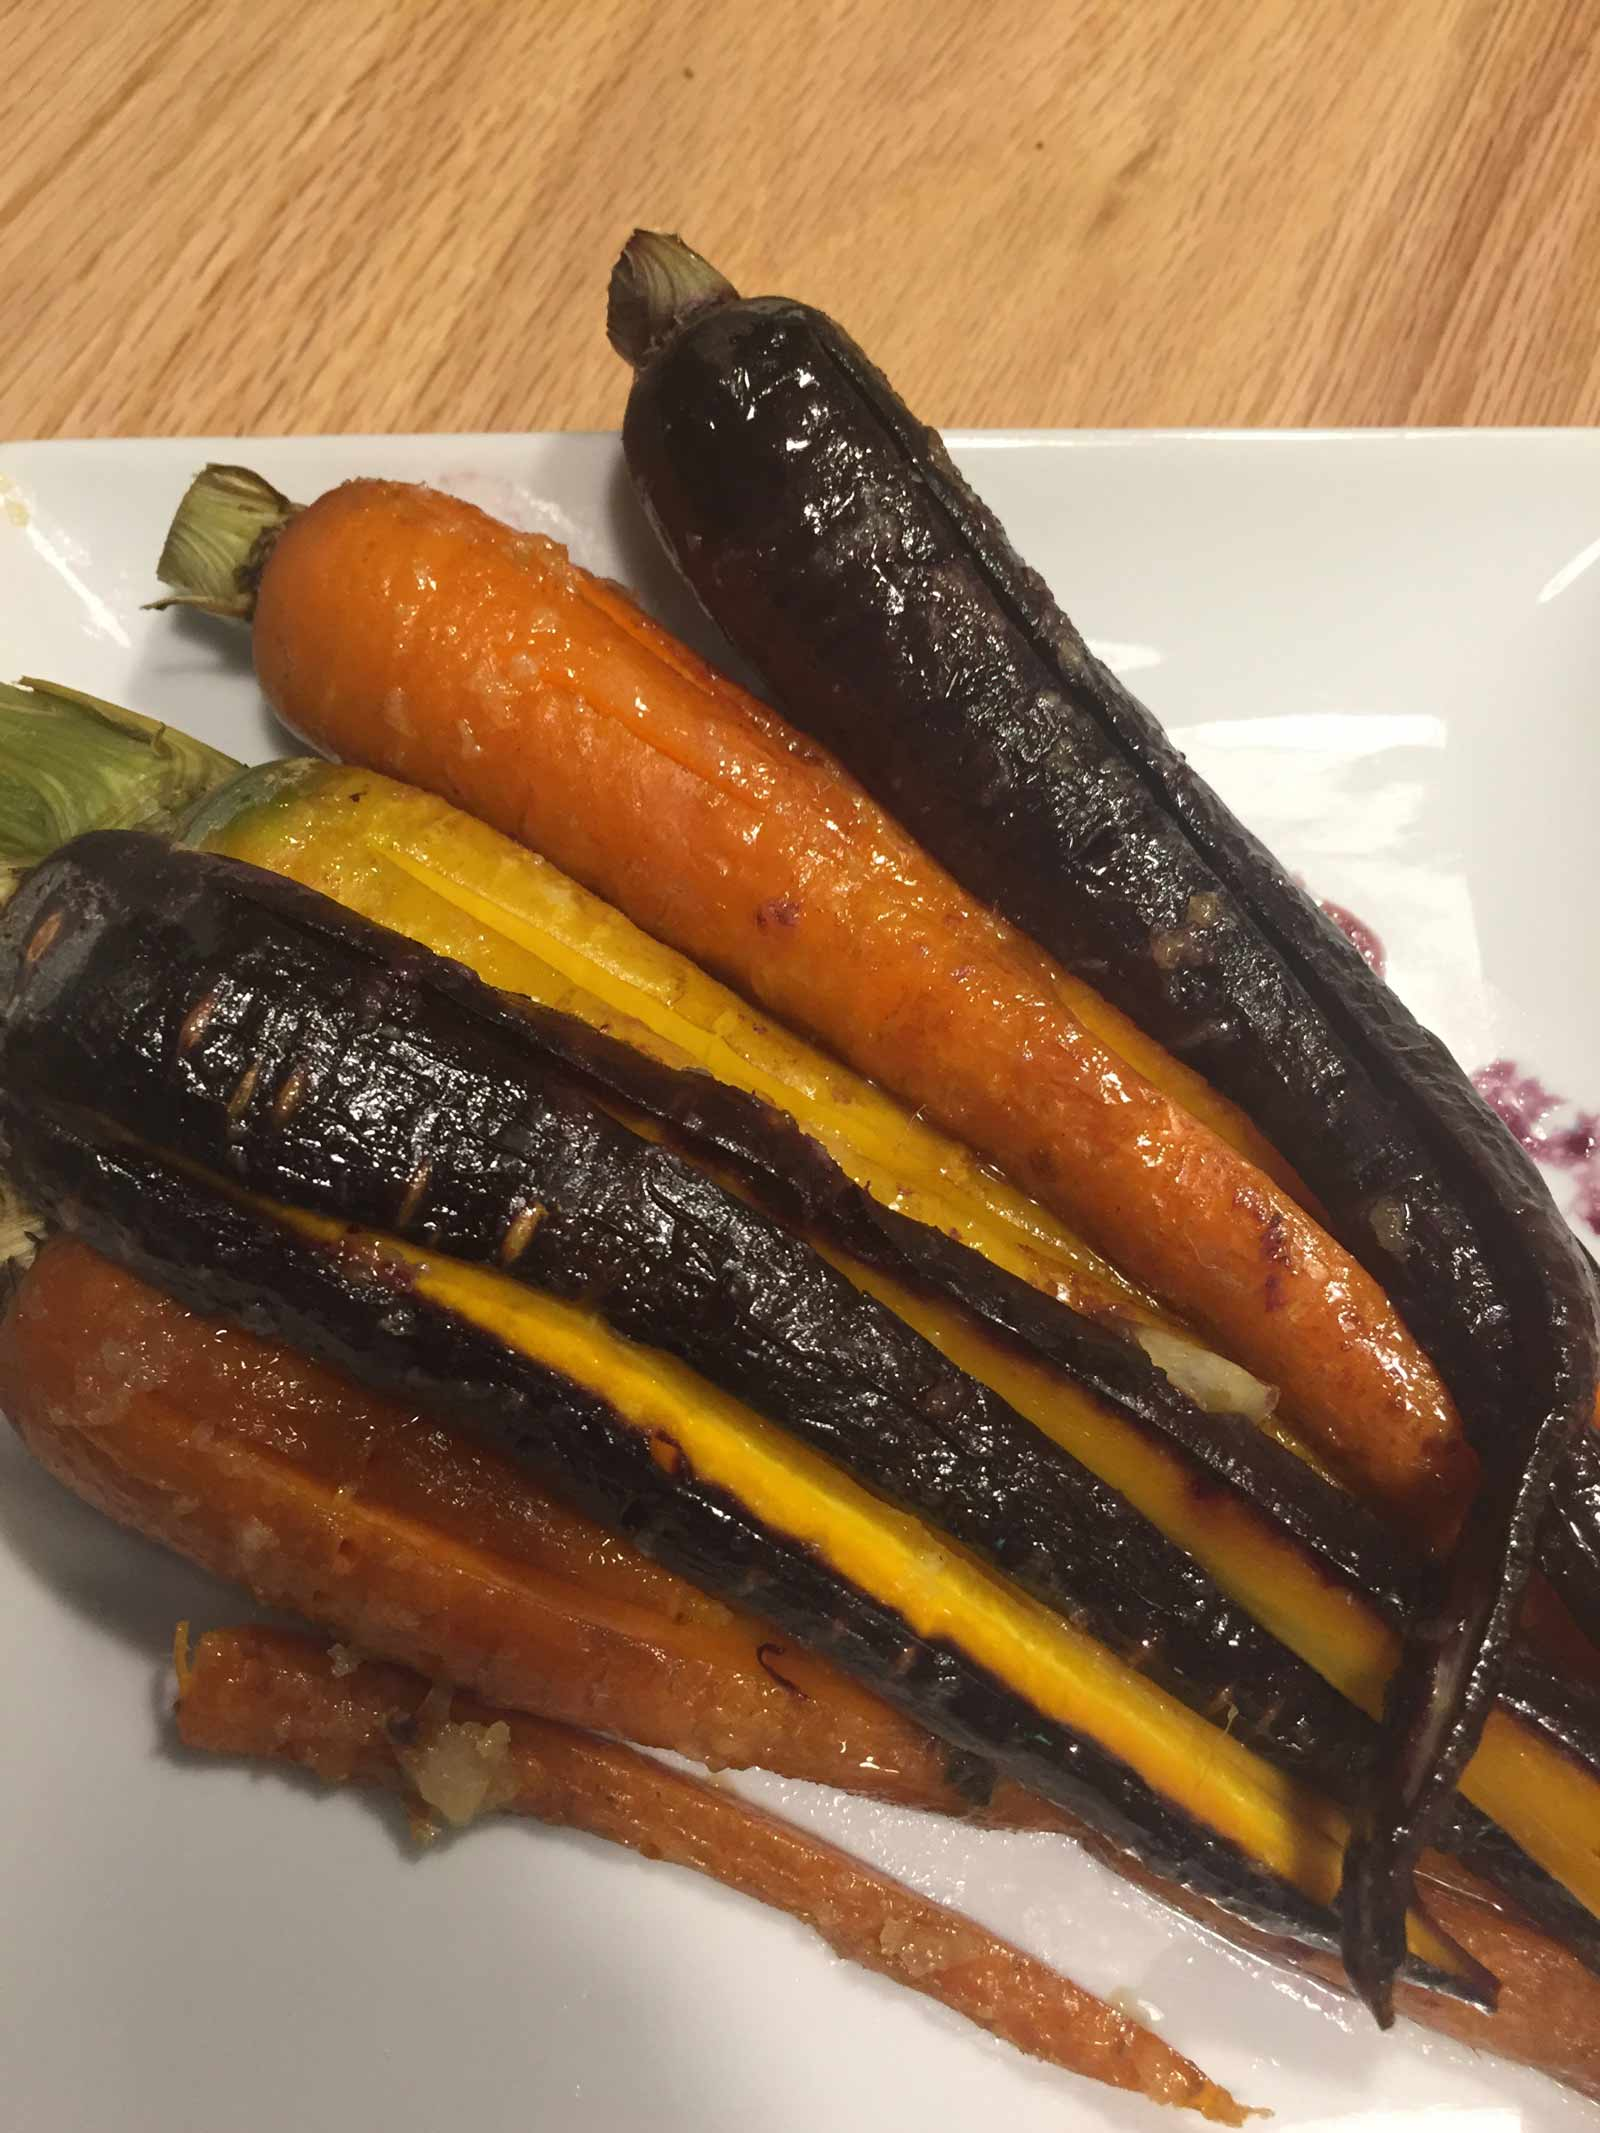 Plate of roasted purple, orange, and yellow carrots.